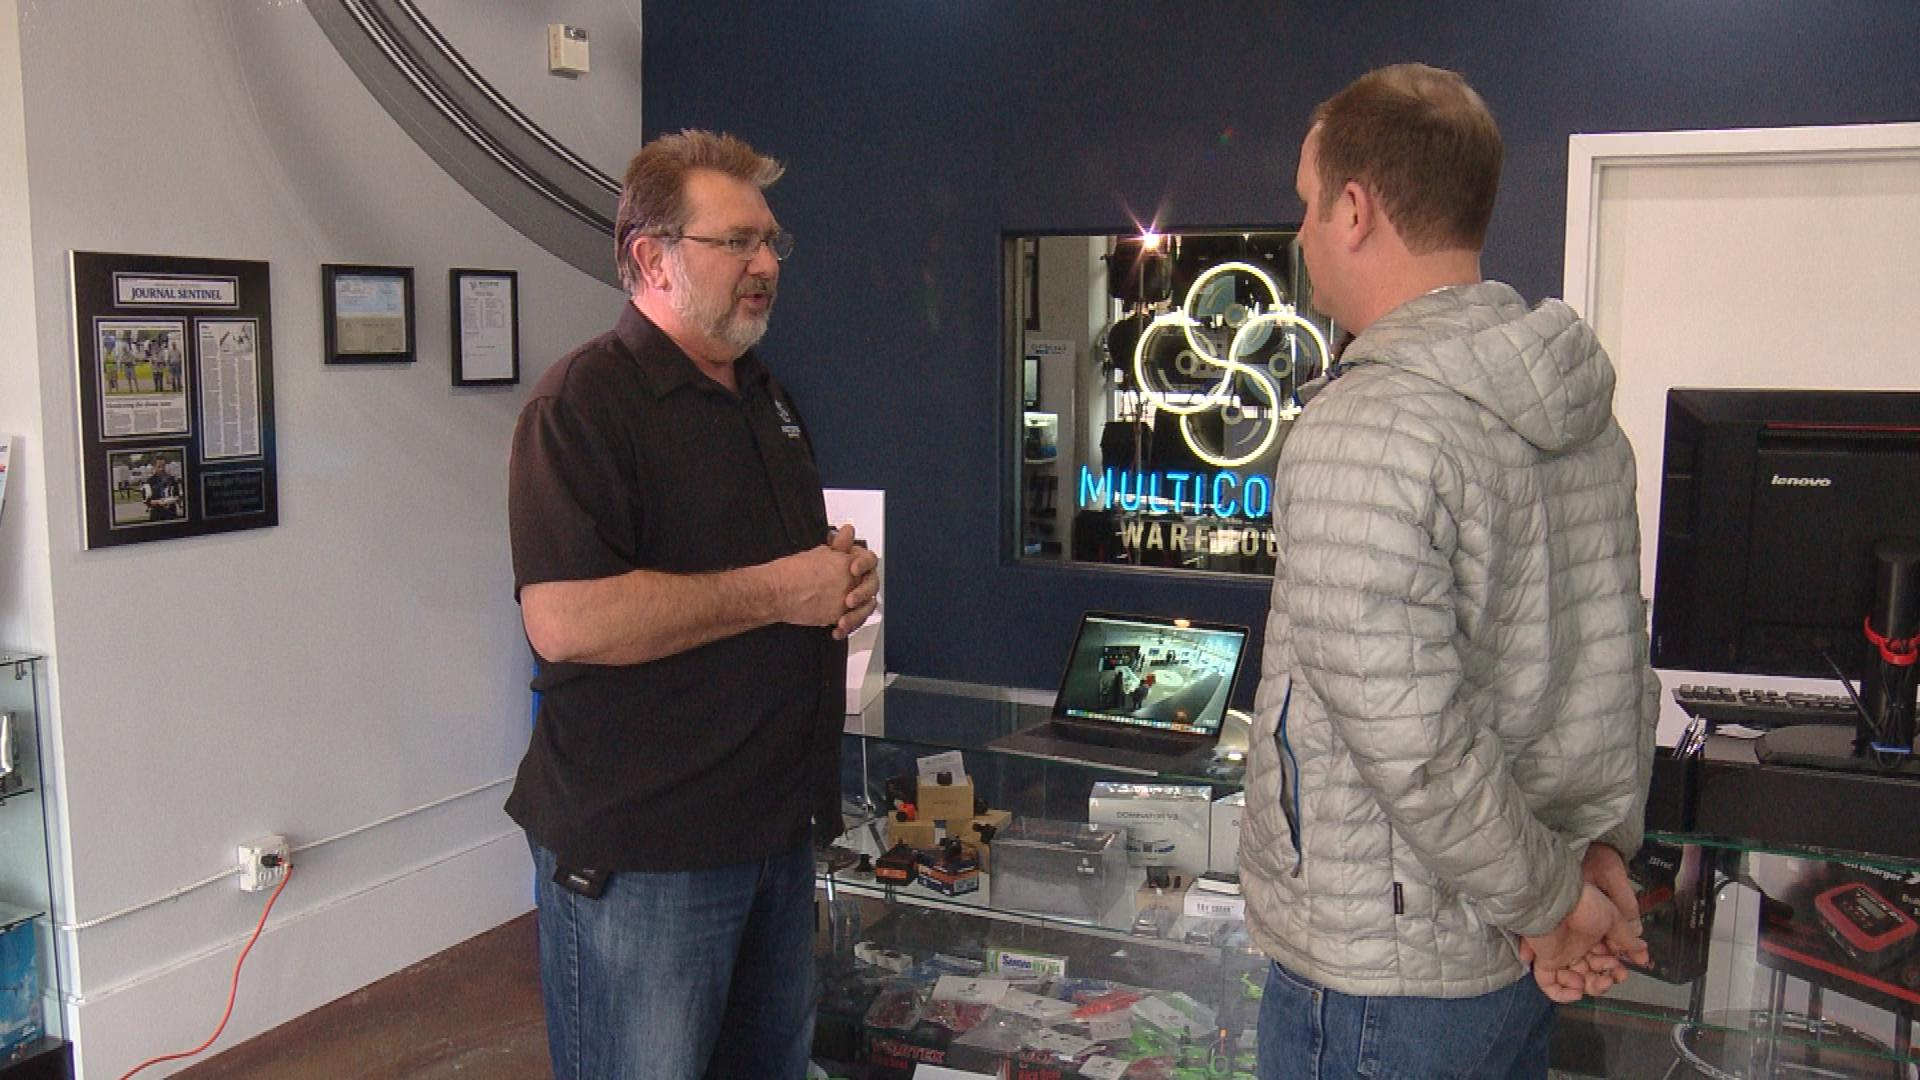 Kerry Garrison, the COO of Multicopter Warehouse, is interviewed by CBS4's Jeff Todd (credit: CBS)